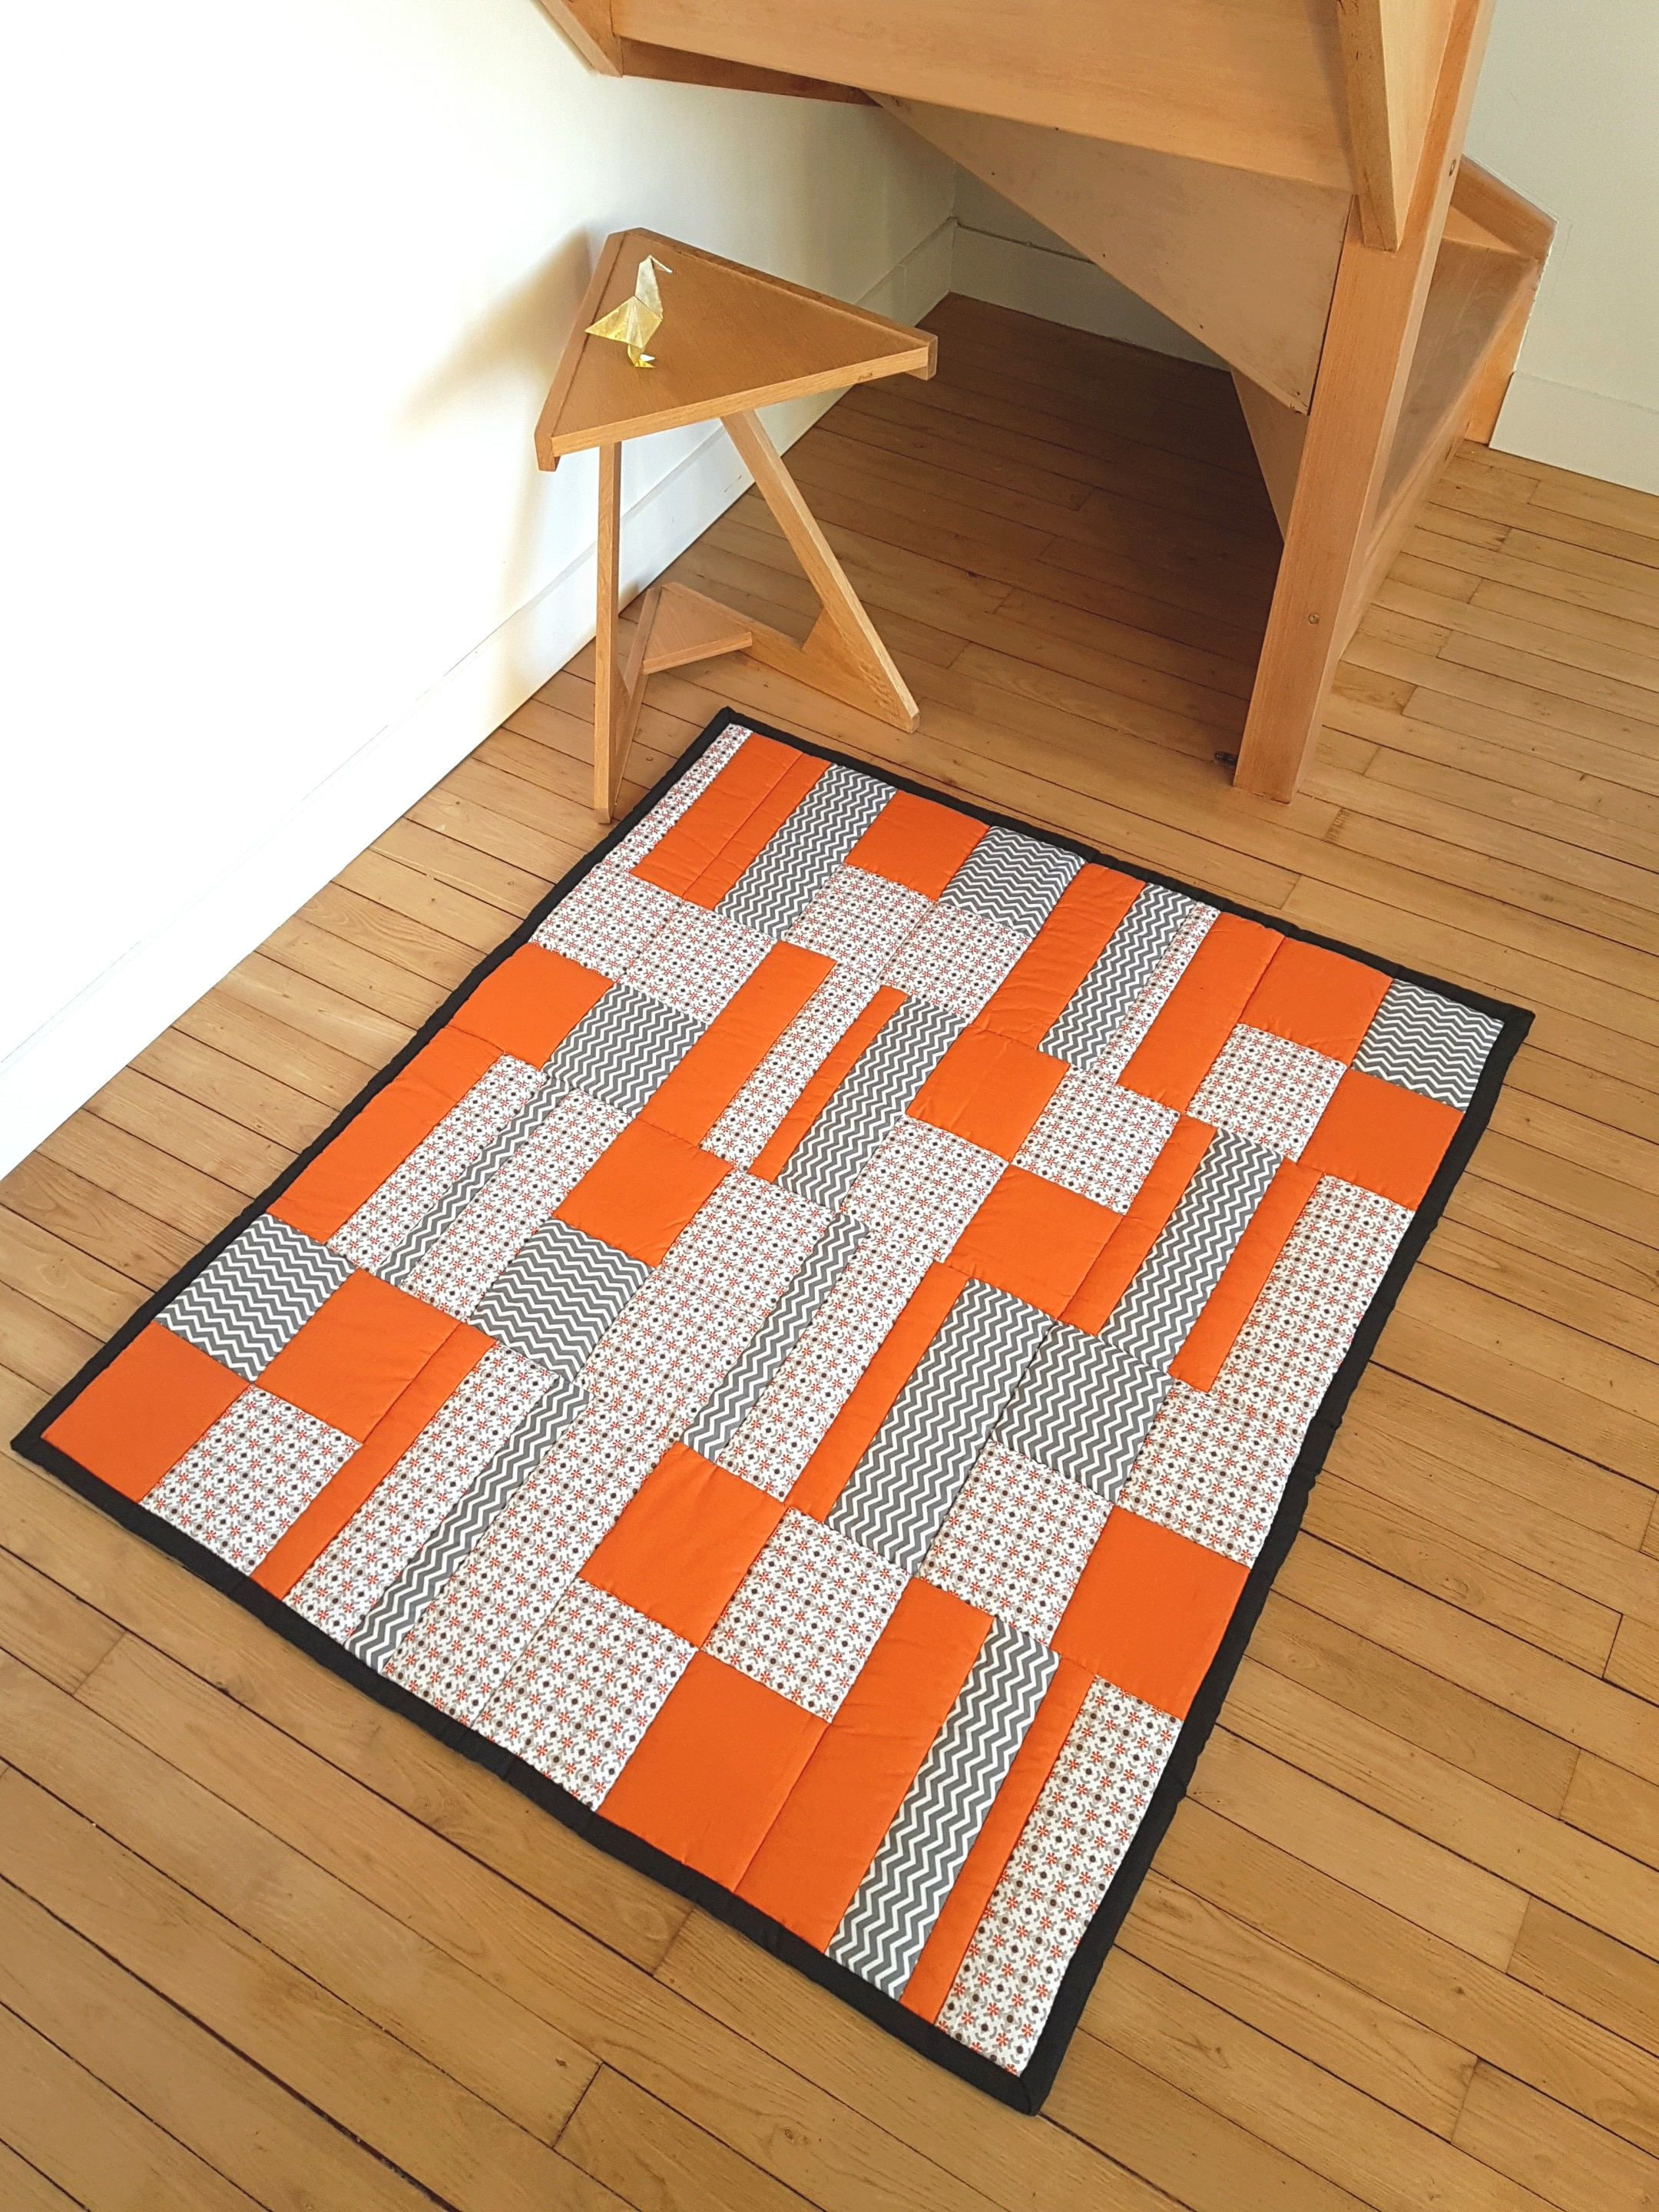 Tapis Orange Et Gris Grand Tapis Bébé Matelassé Patchwork Tissus Orange Blanc Gris